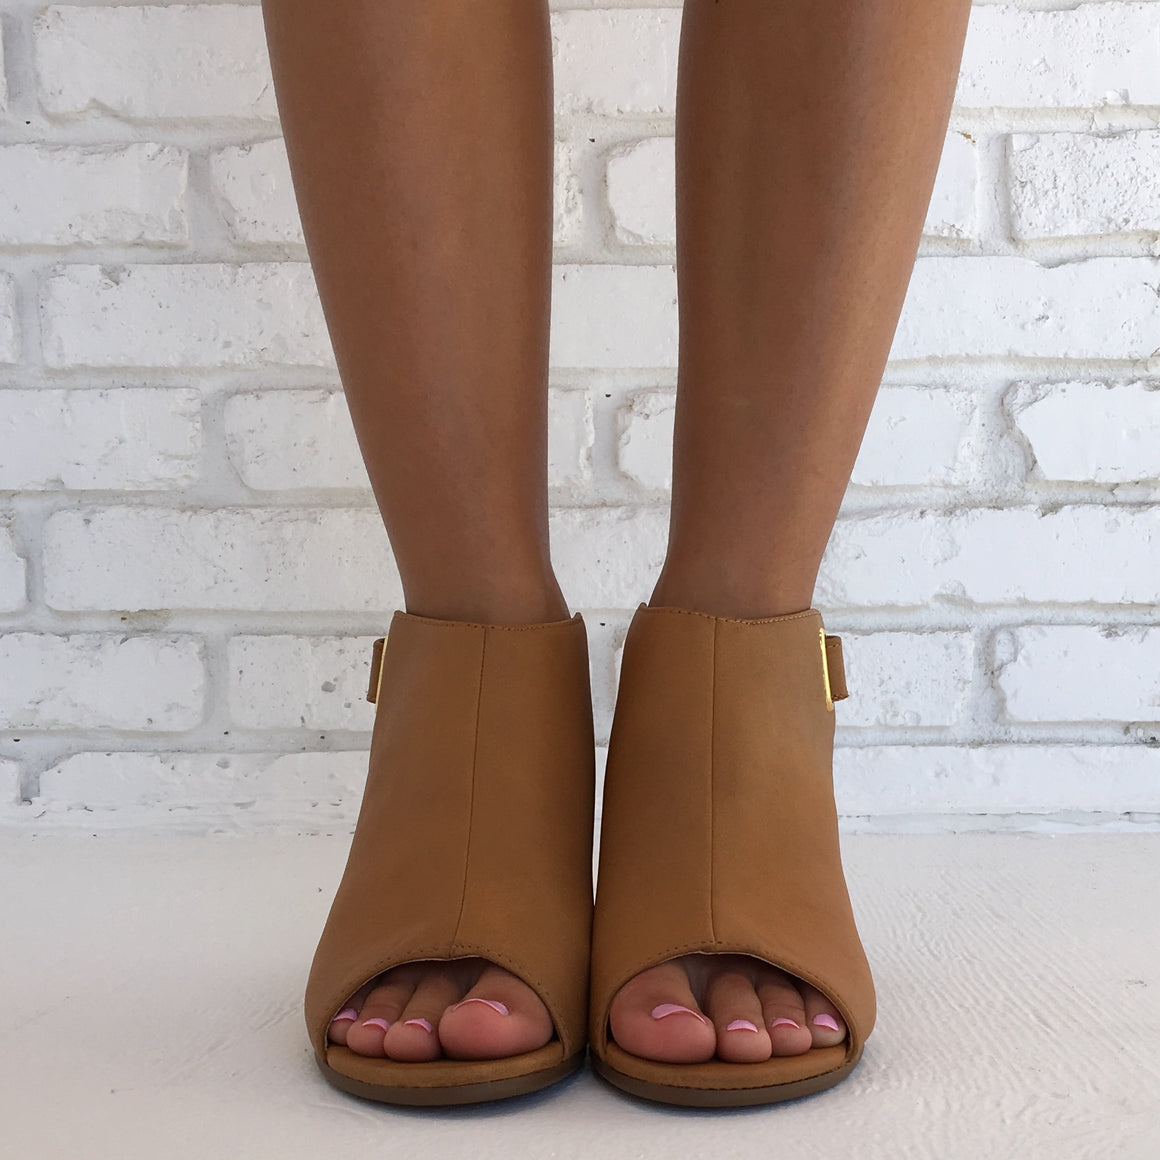 The Lasted Leather Booties in Camel